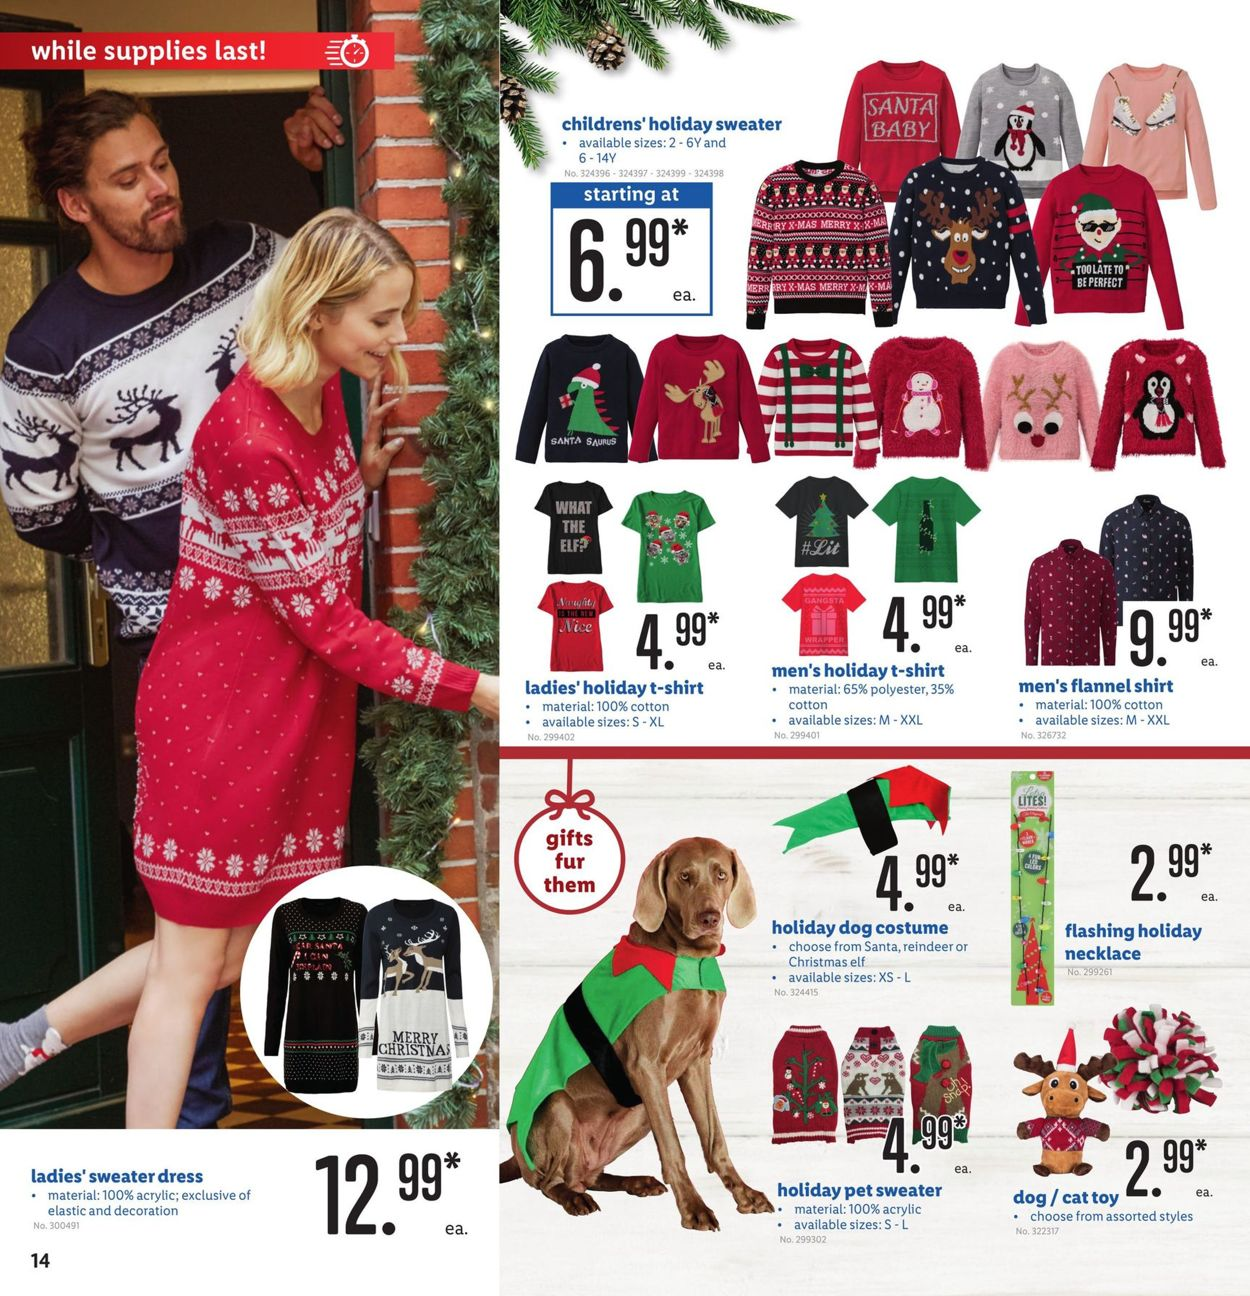 Lidl Black Friday Deals 2019 Current Weekly Ad 11 27 12 03 2019 14 Frequent Ads Com